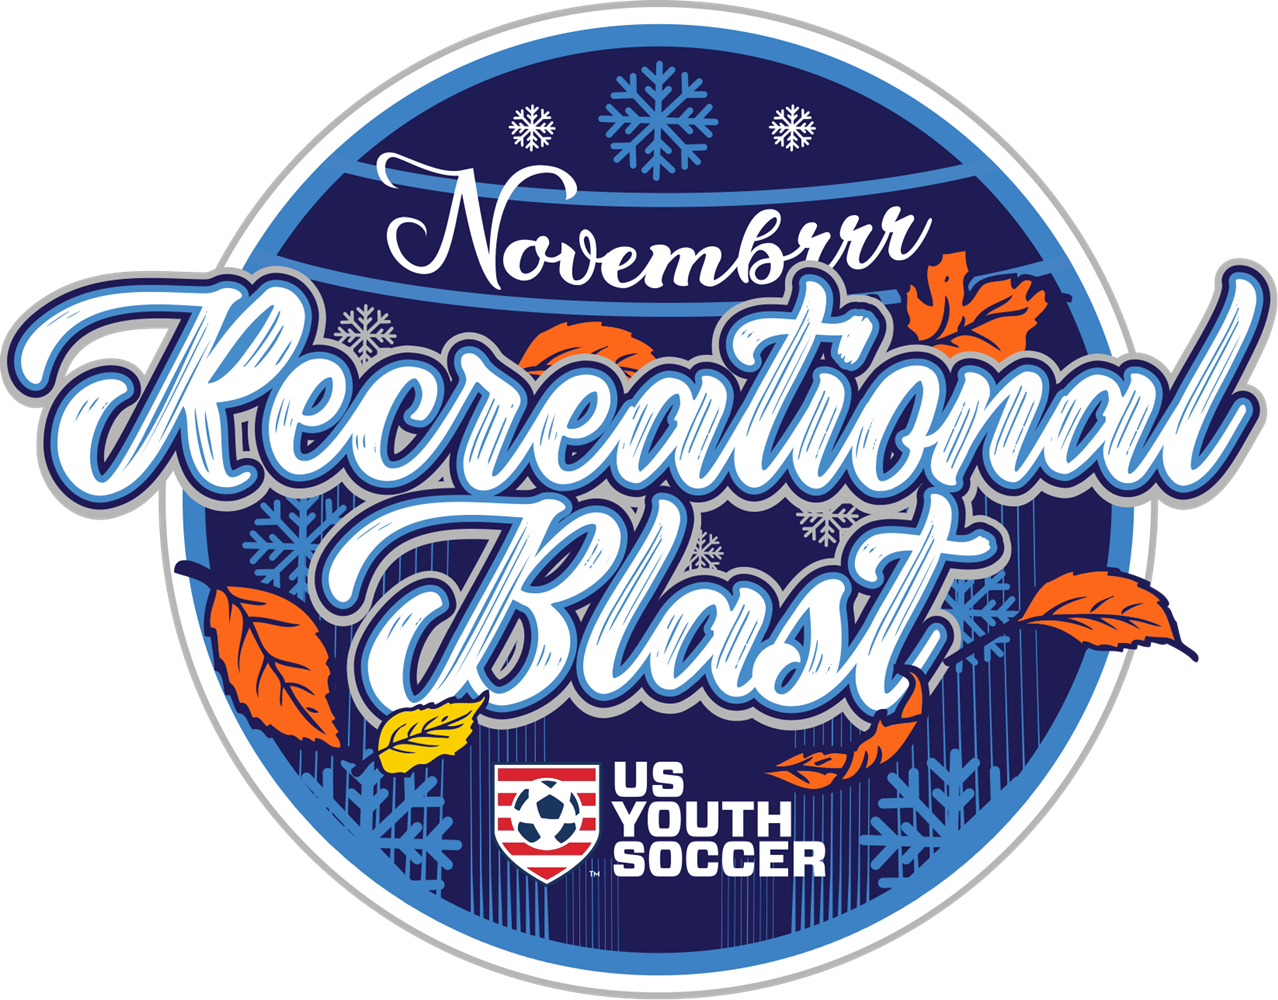 novembrrr_recreational_blast_(1)2020